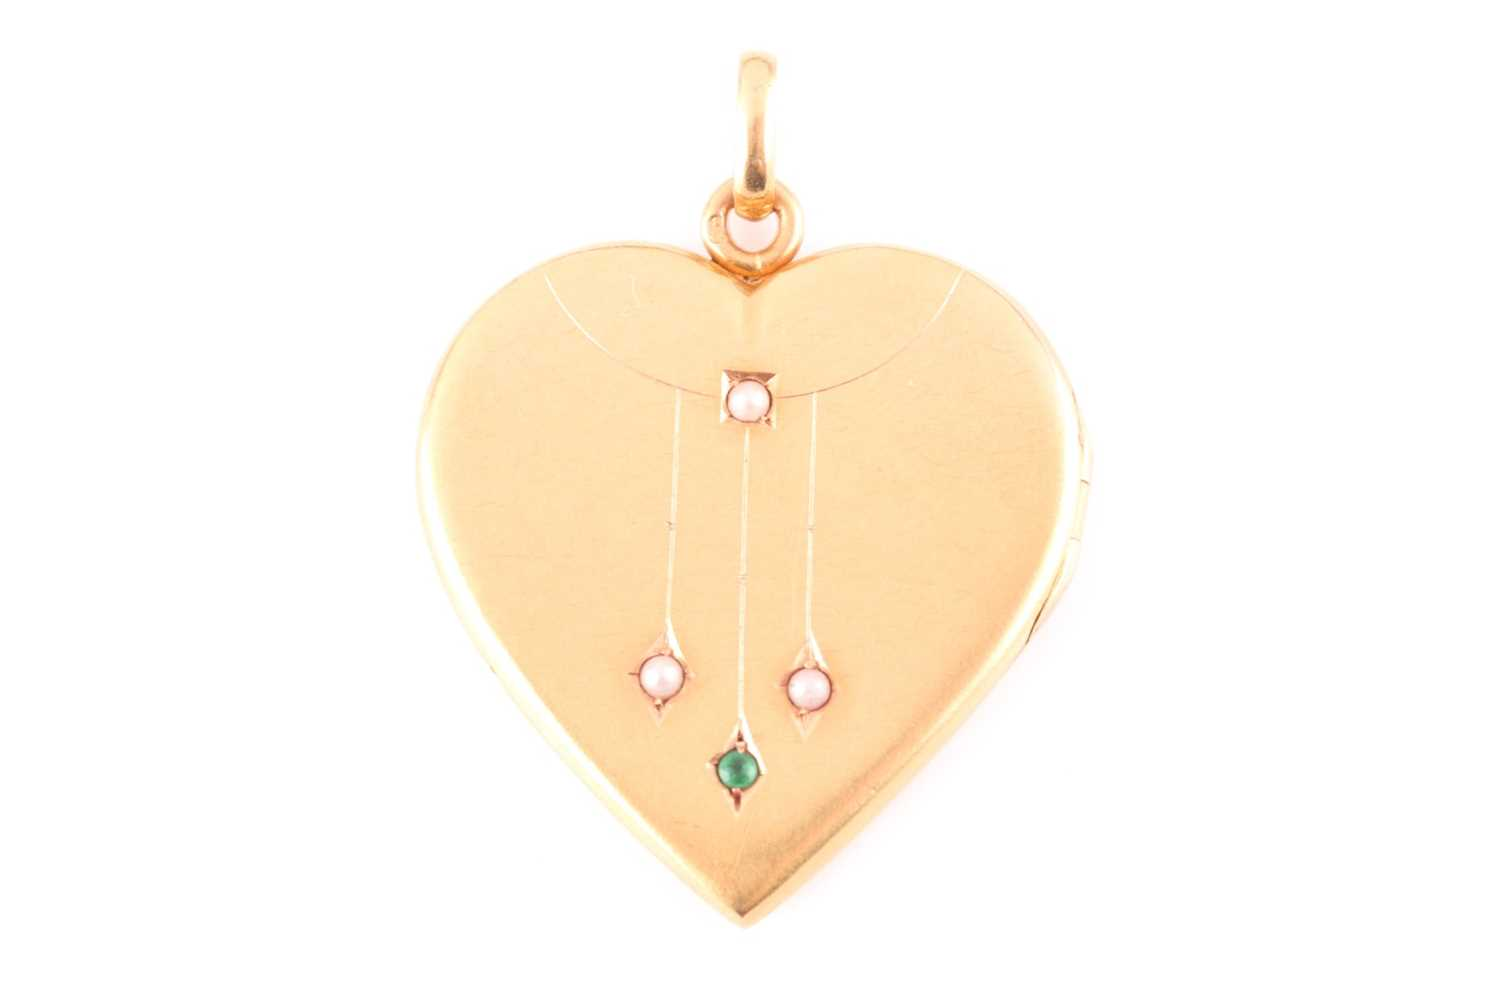 An early 20th century yellow metal heart-shaped locket pendant, the hinged front inset with small